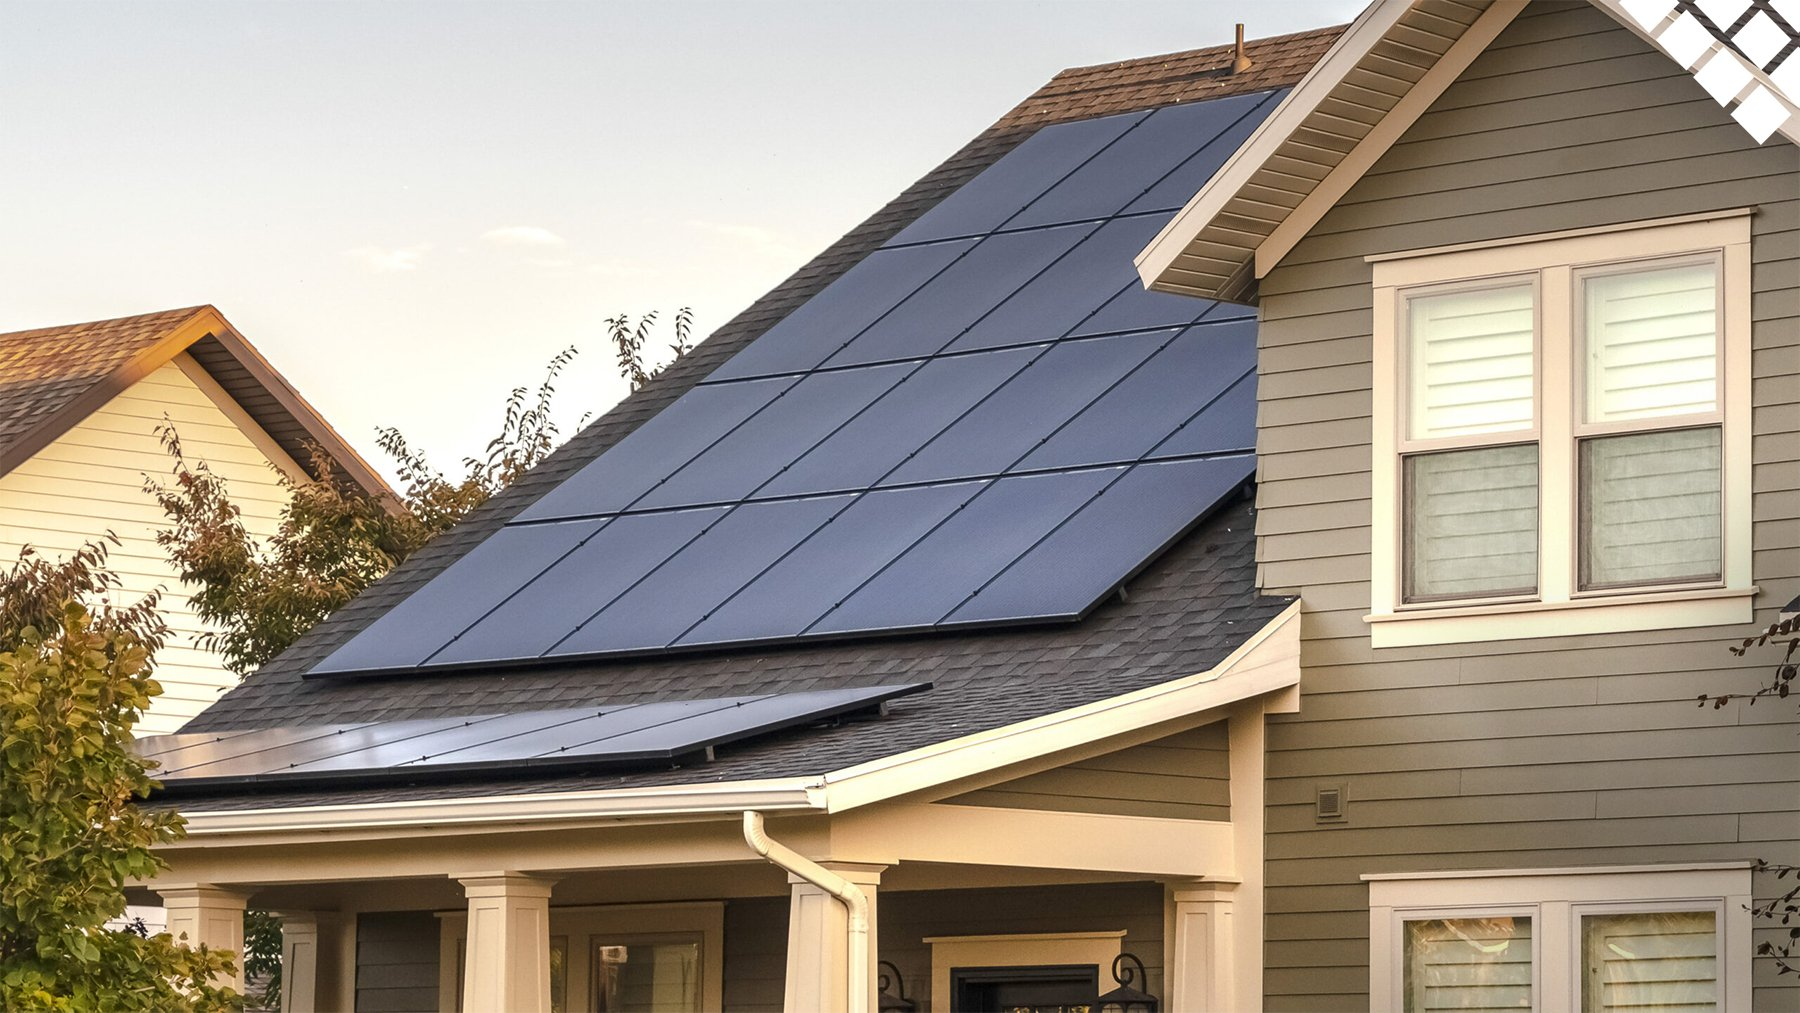 Residential home with solar panels on roof